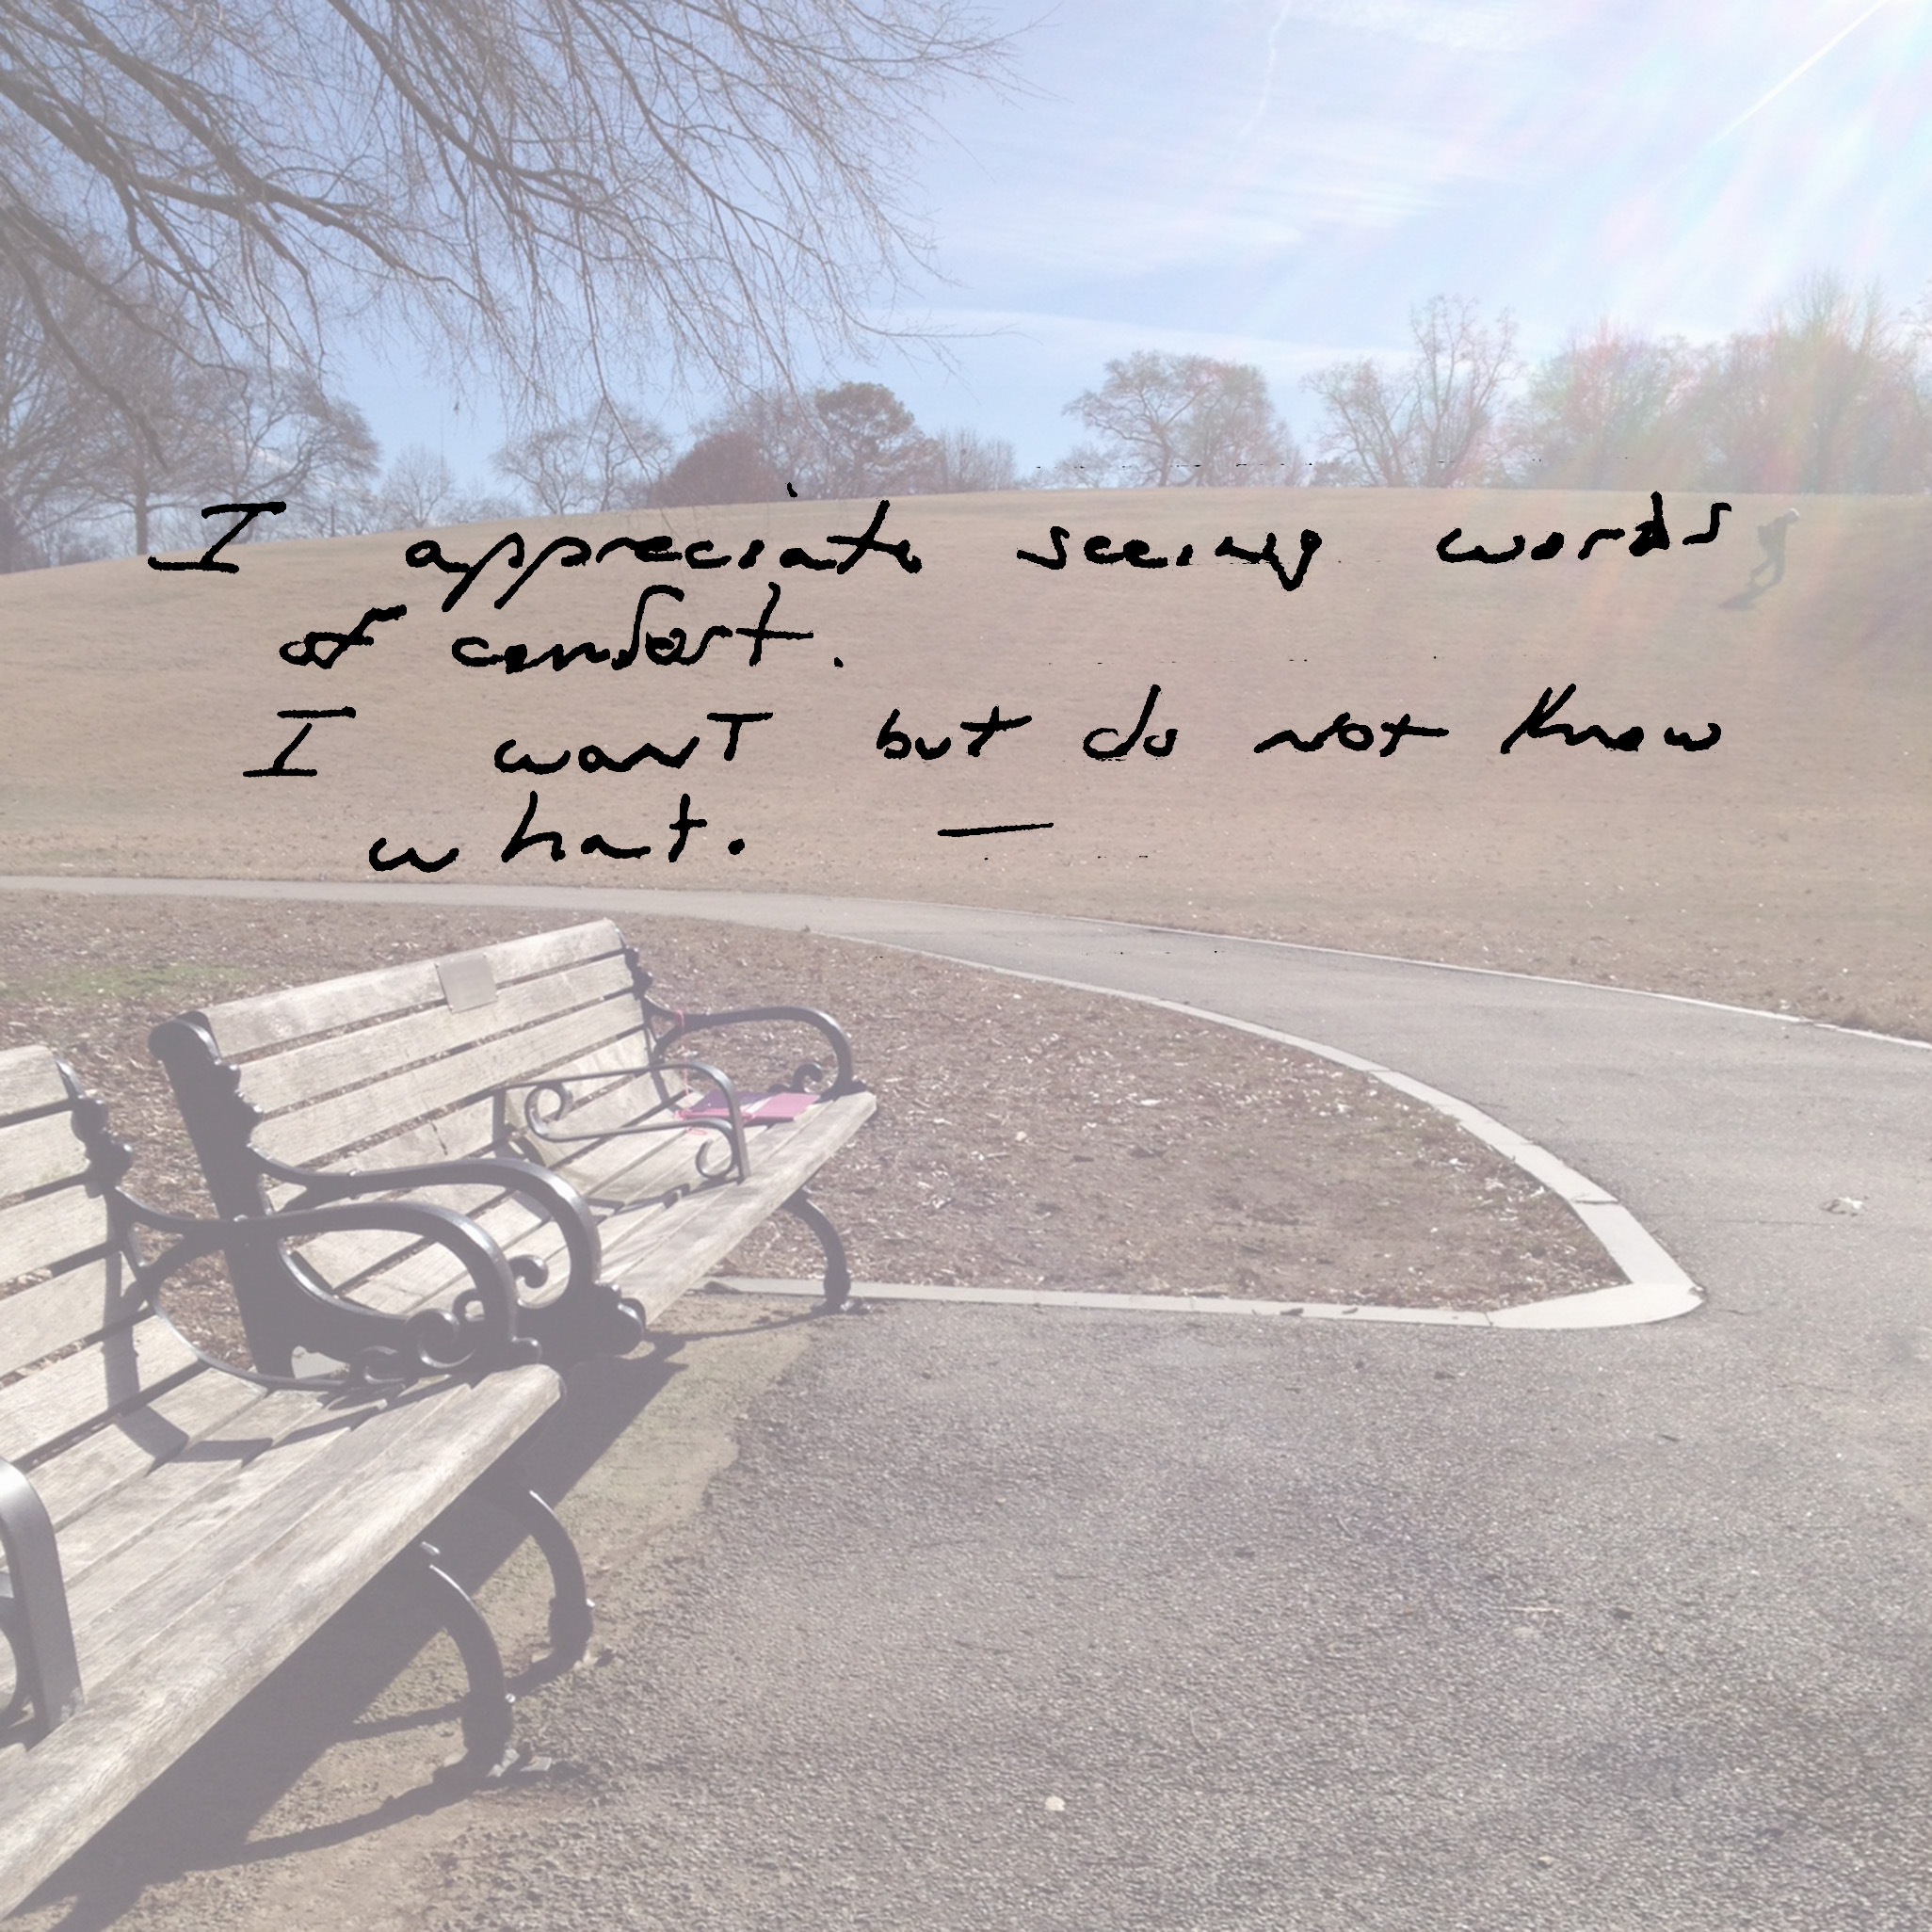 I appreciate seeing words of comfort. I want but do not know what.